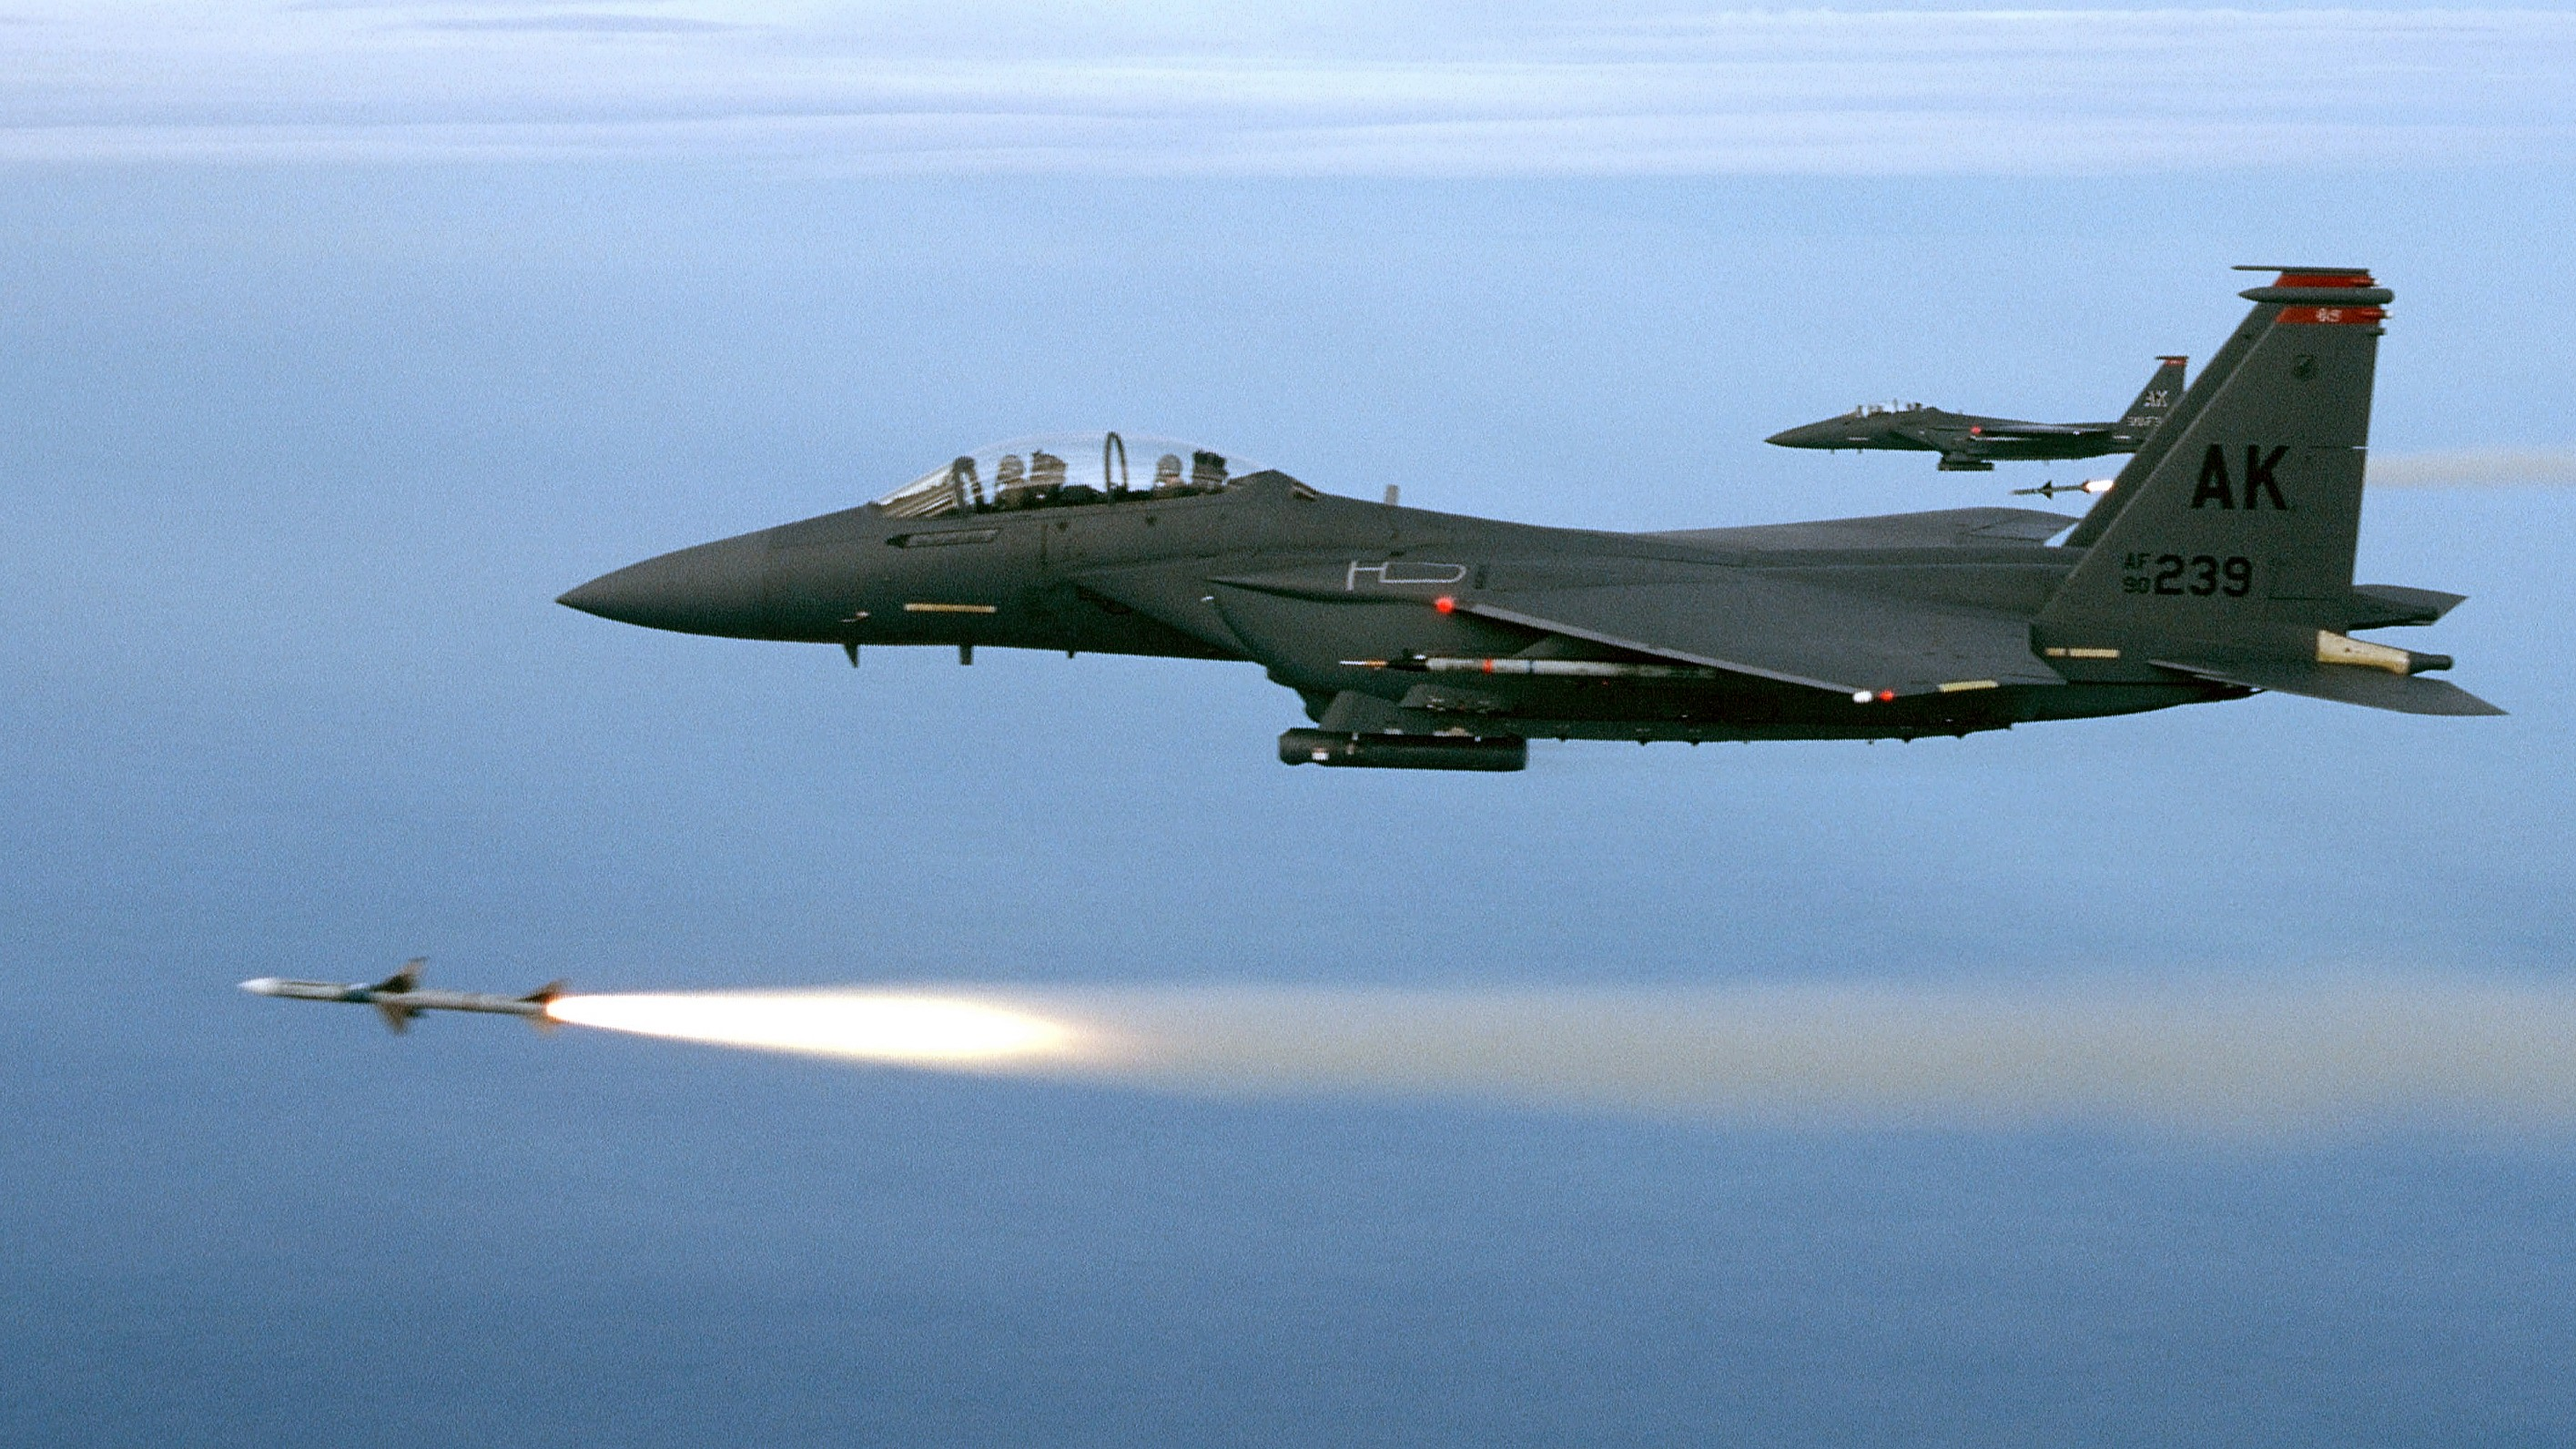 F 15E Lightning Firing A Missile Image US Air Force